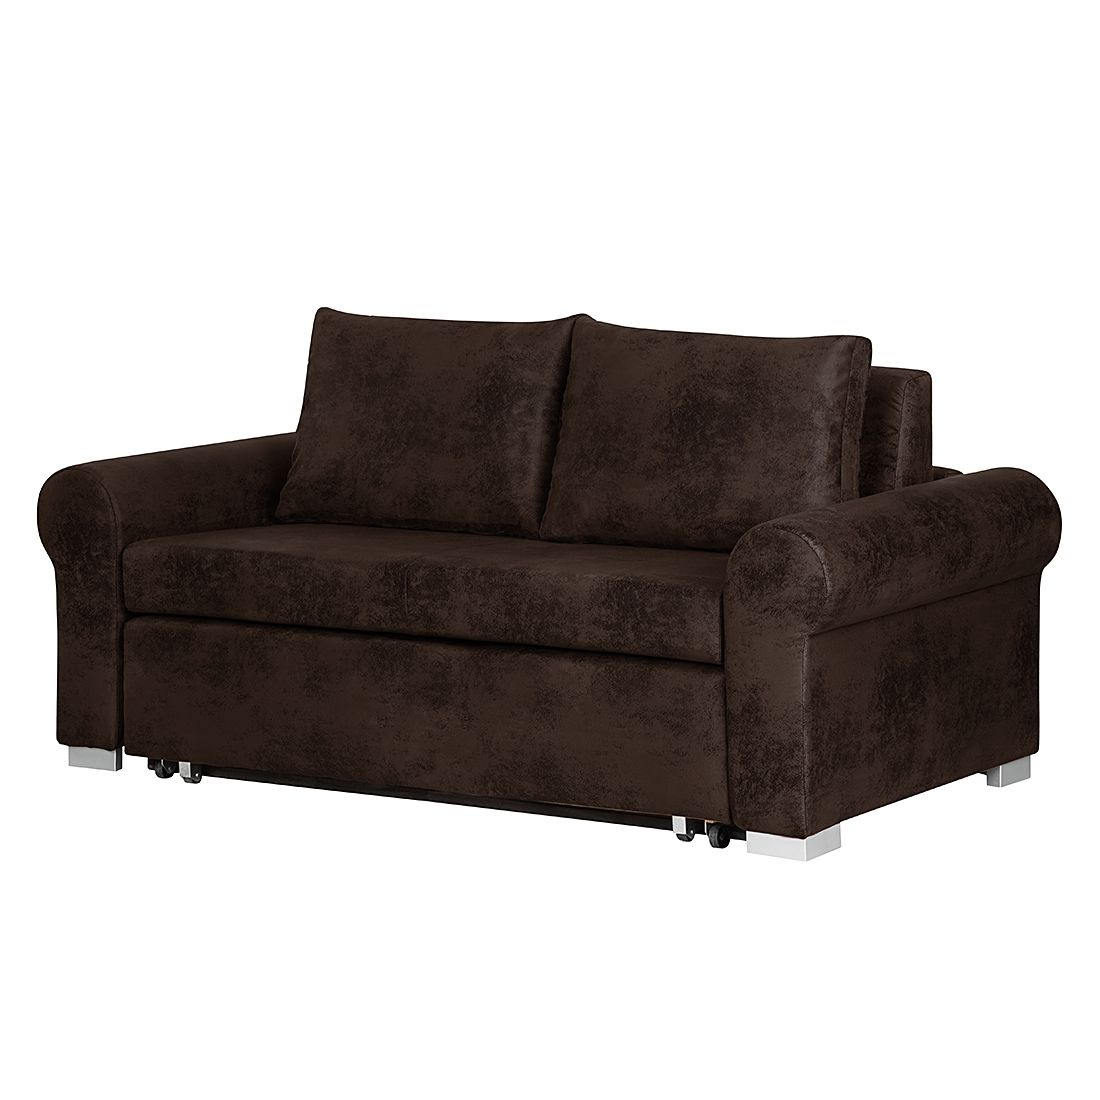 schlafsofa latina country antiklederoptik dunkelbraun breite 205 cm roomscape online kaufen. Black Bedroom Furniture Sets. Home Design Ideas